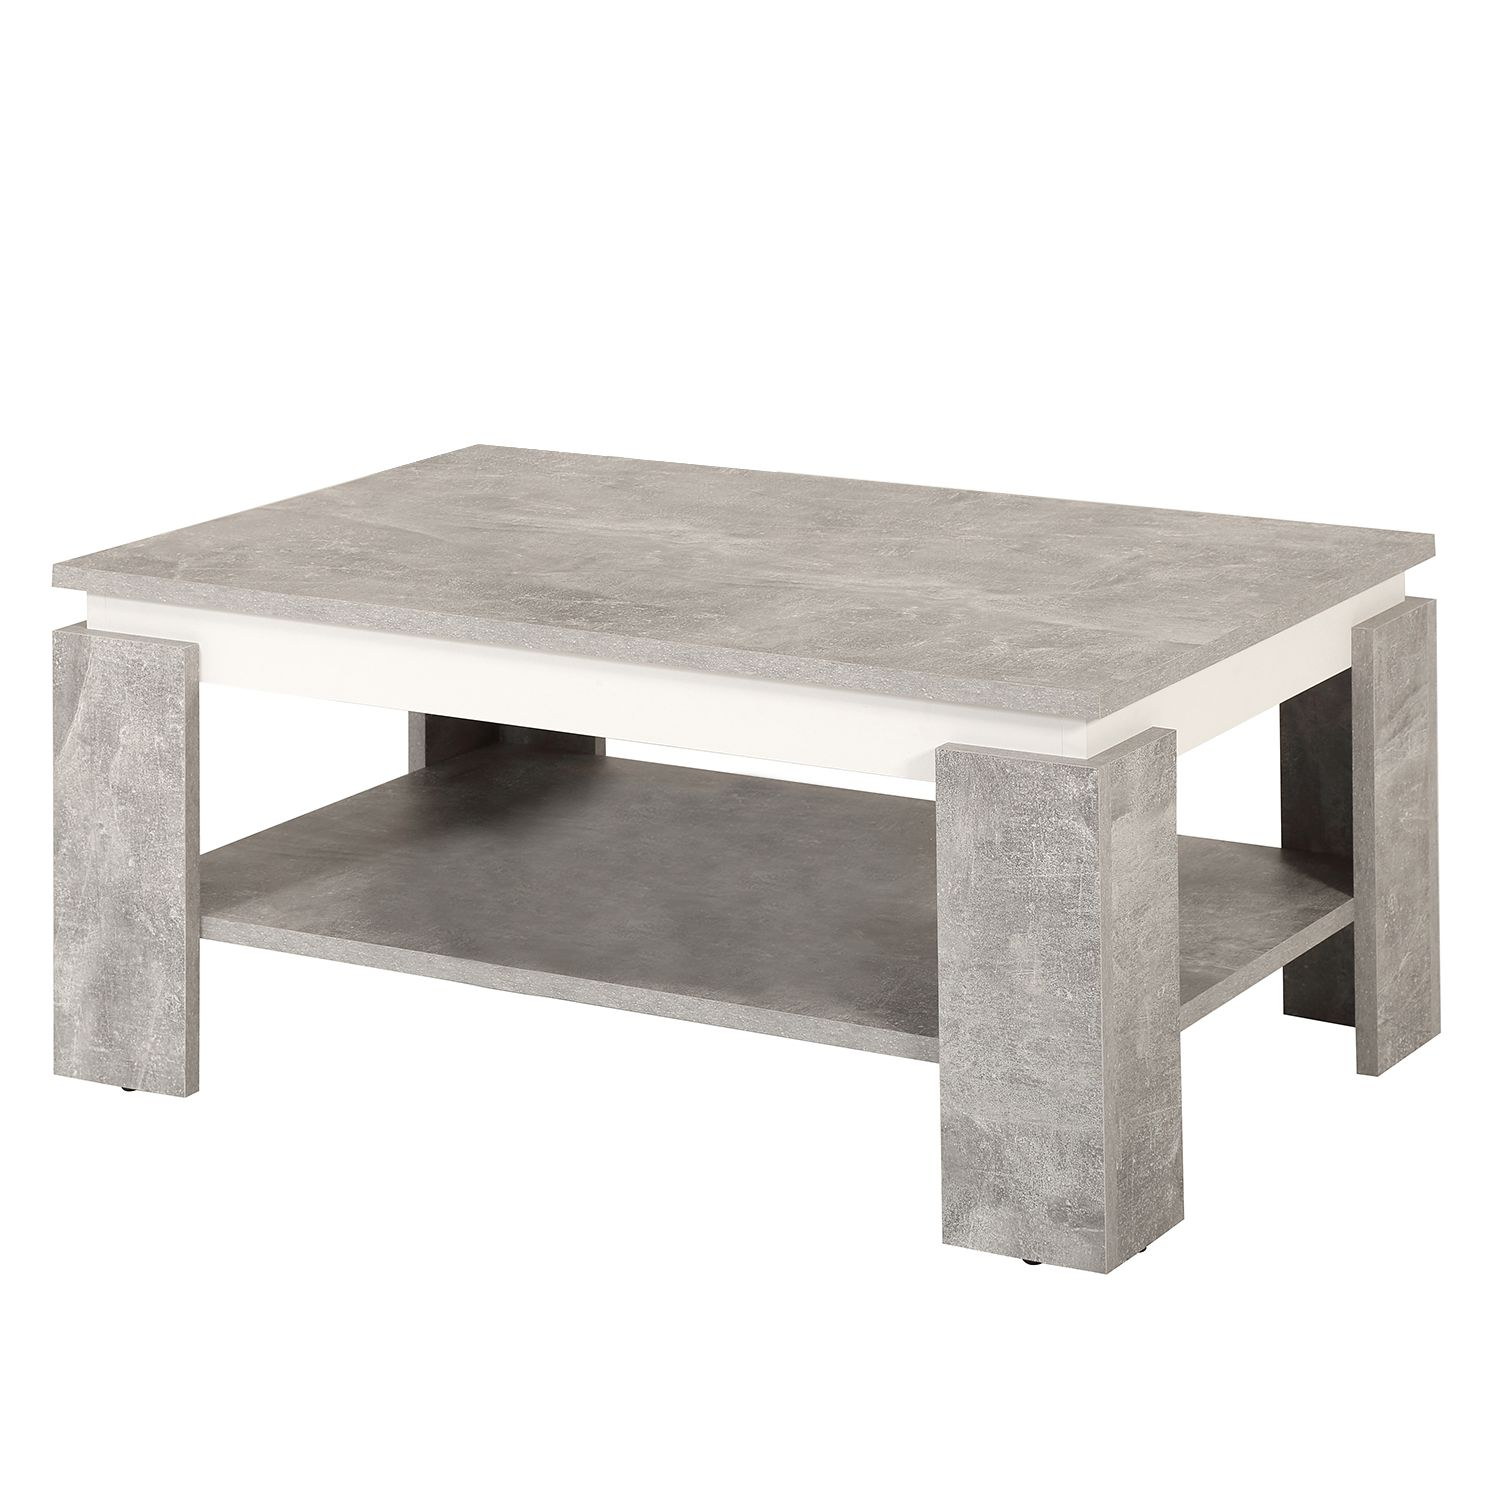 Table basse Paola